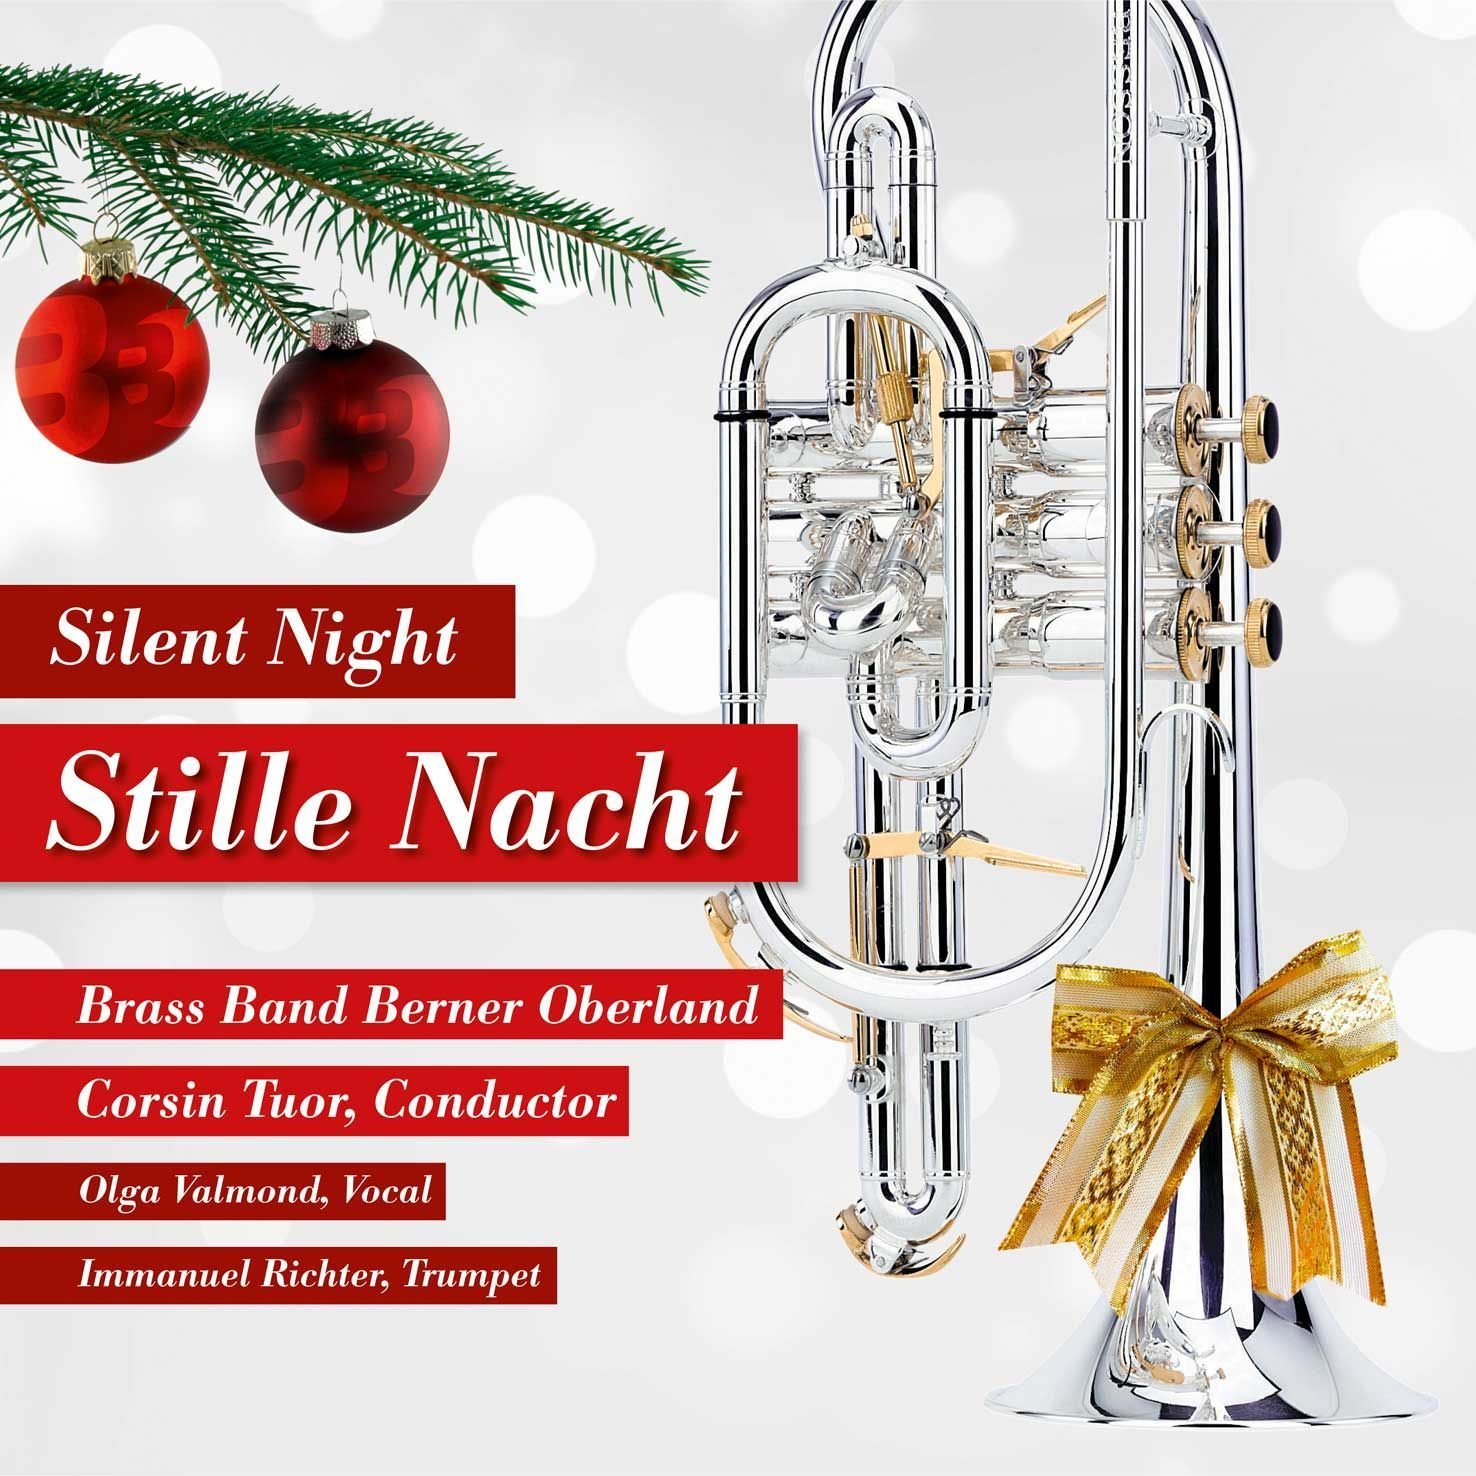 Silent Night, Stille Nacht